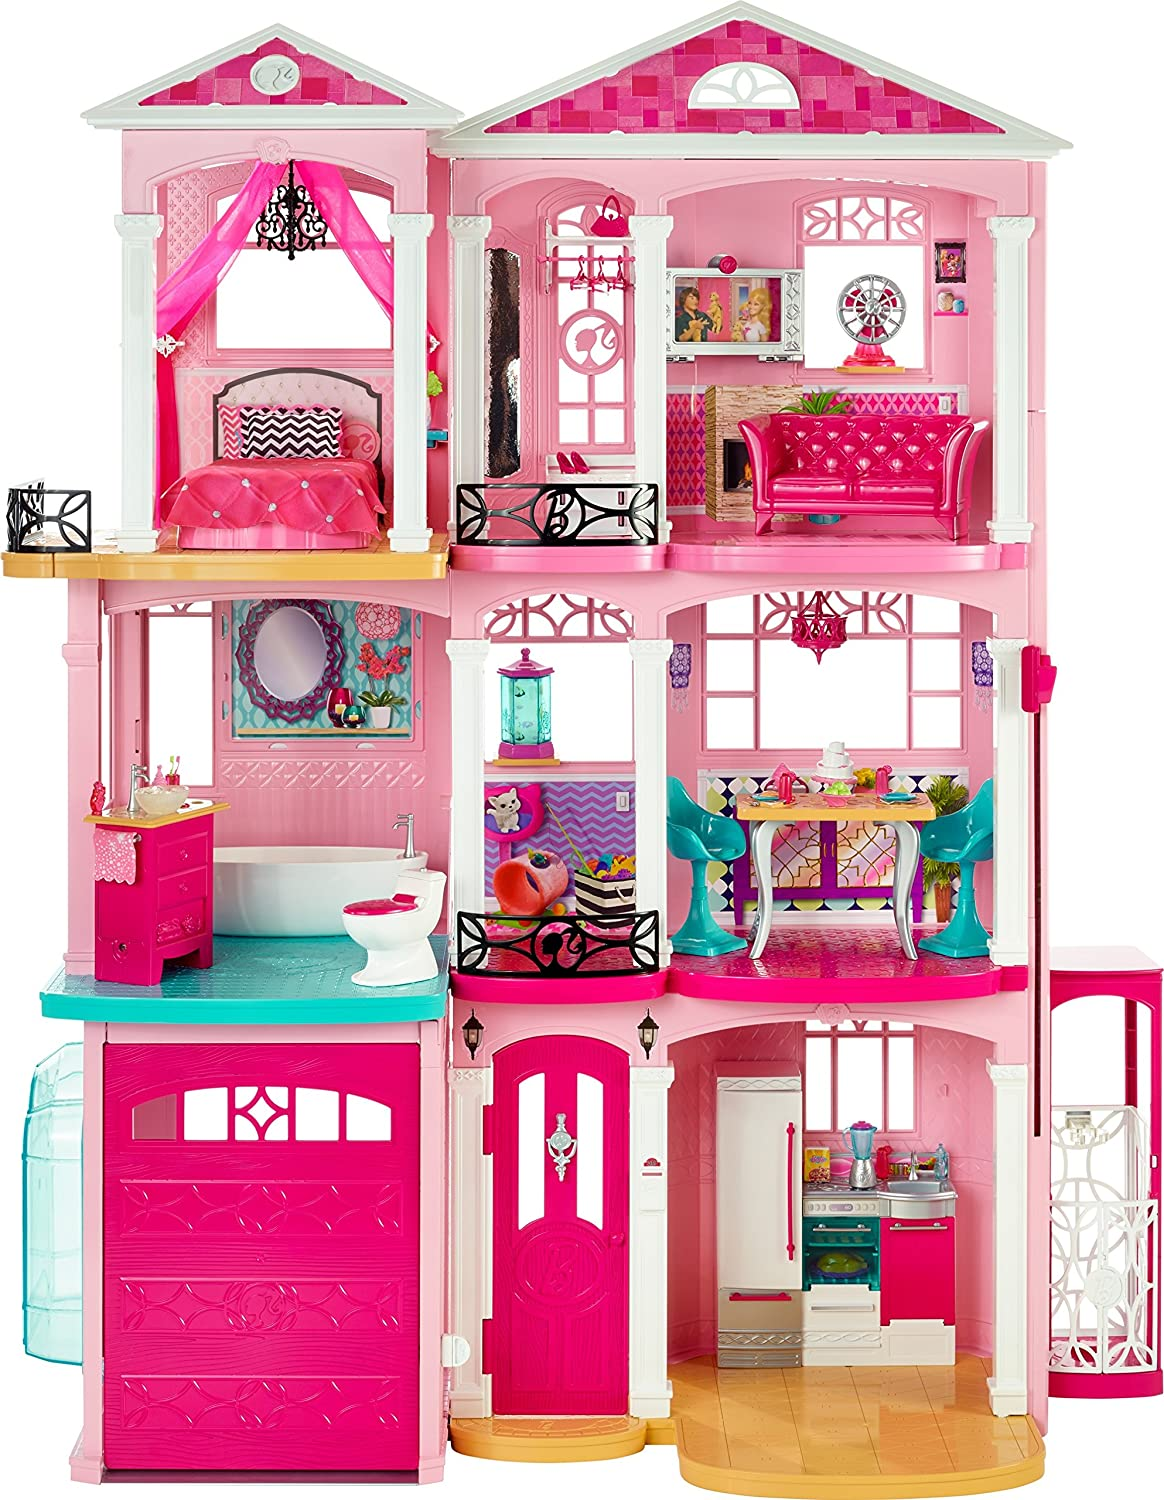 Top 9 Best Dollhouse for Toddlers Reviews in 2019 1